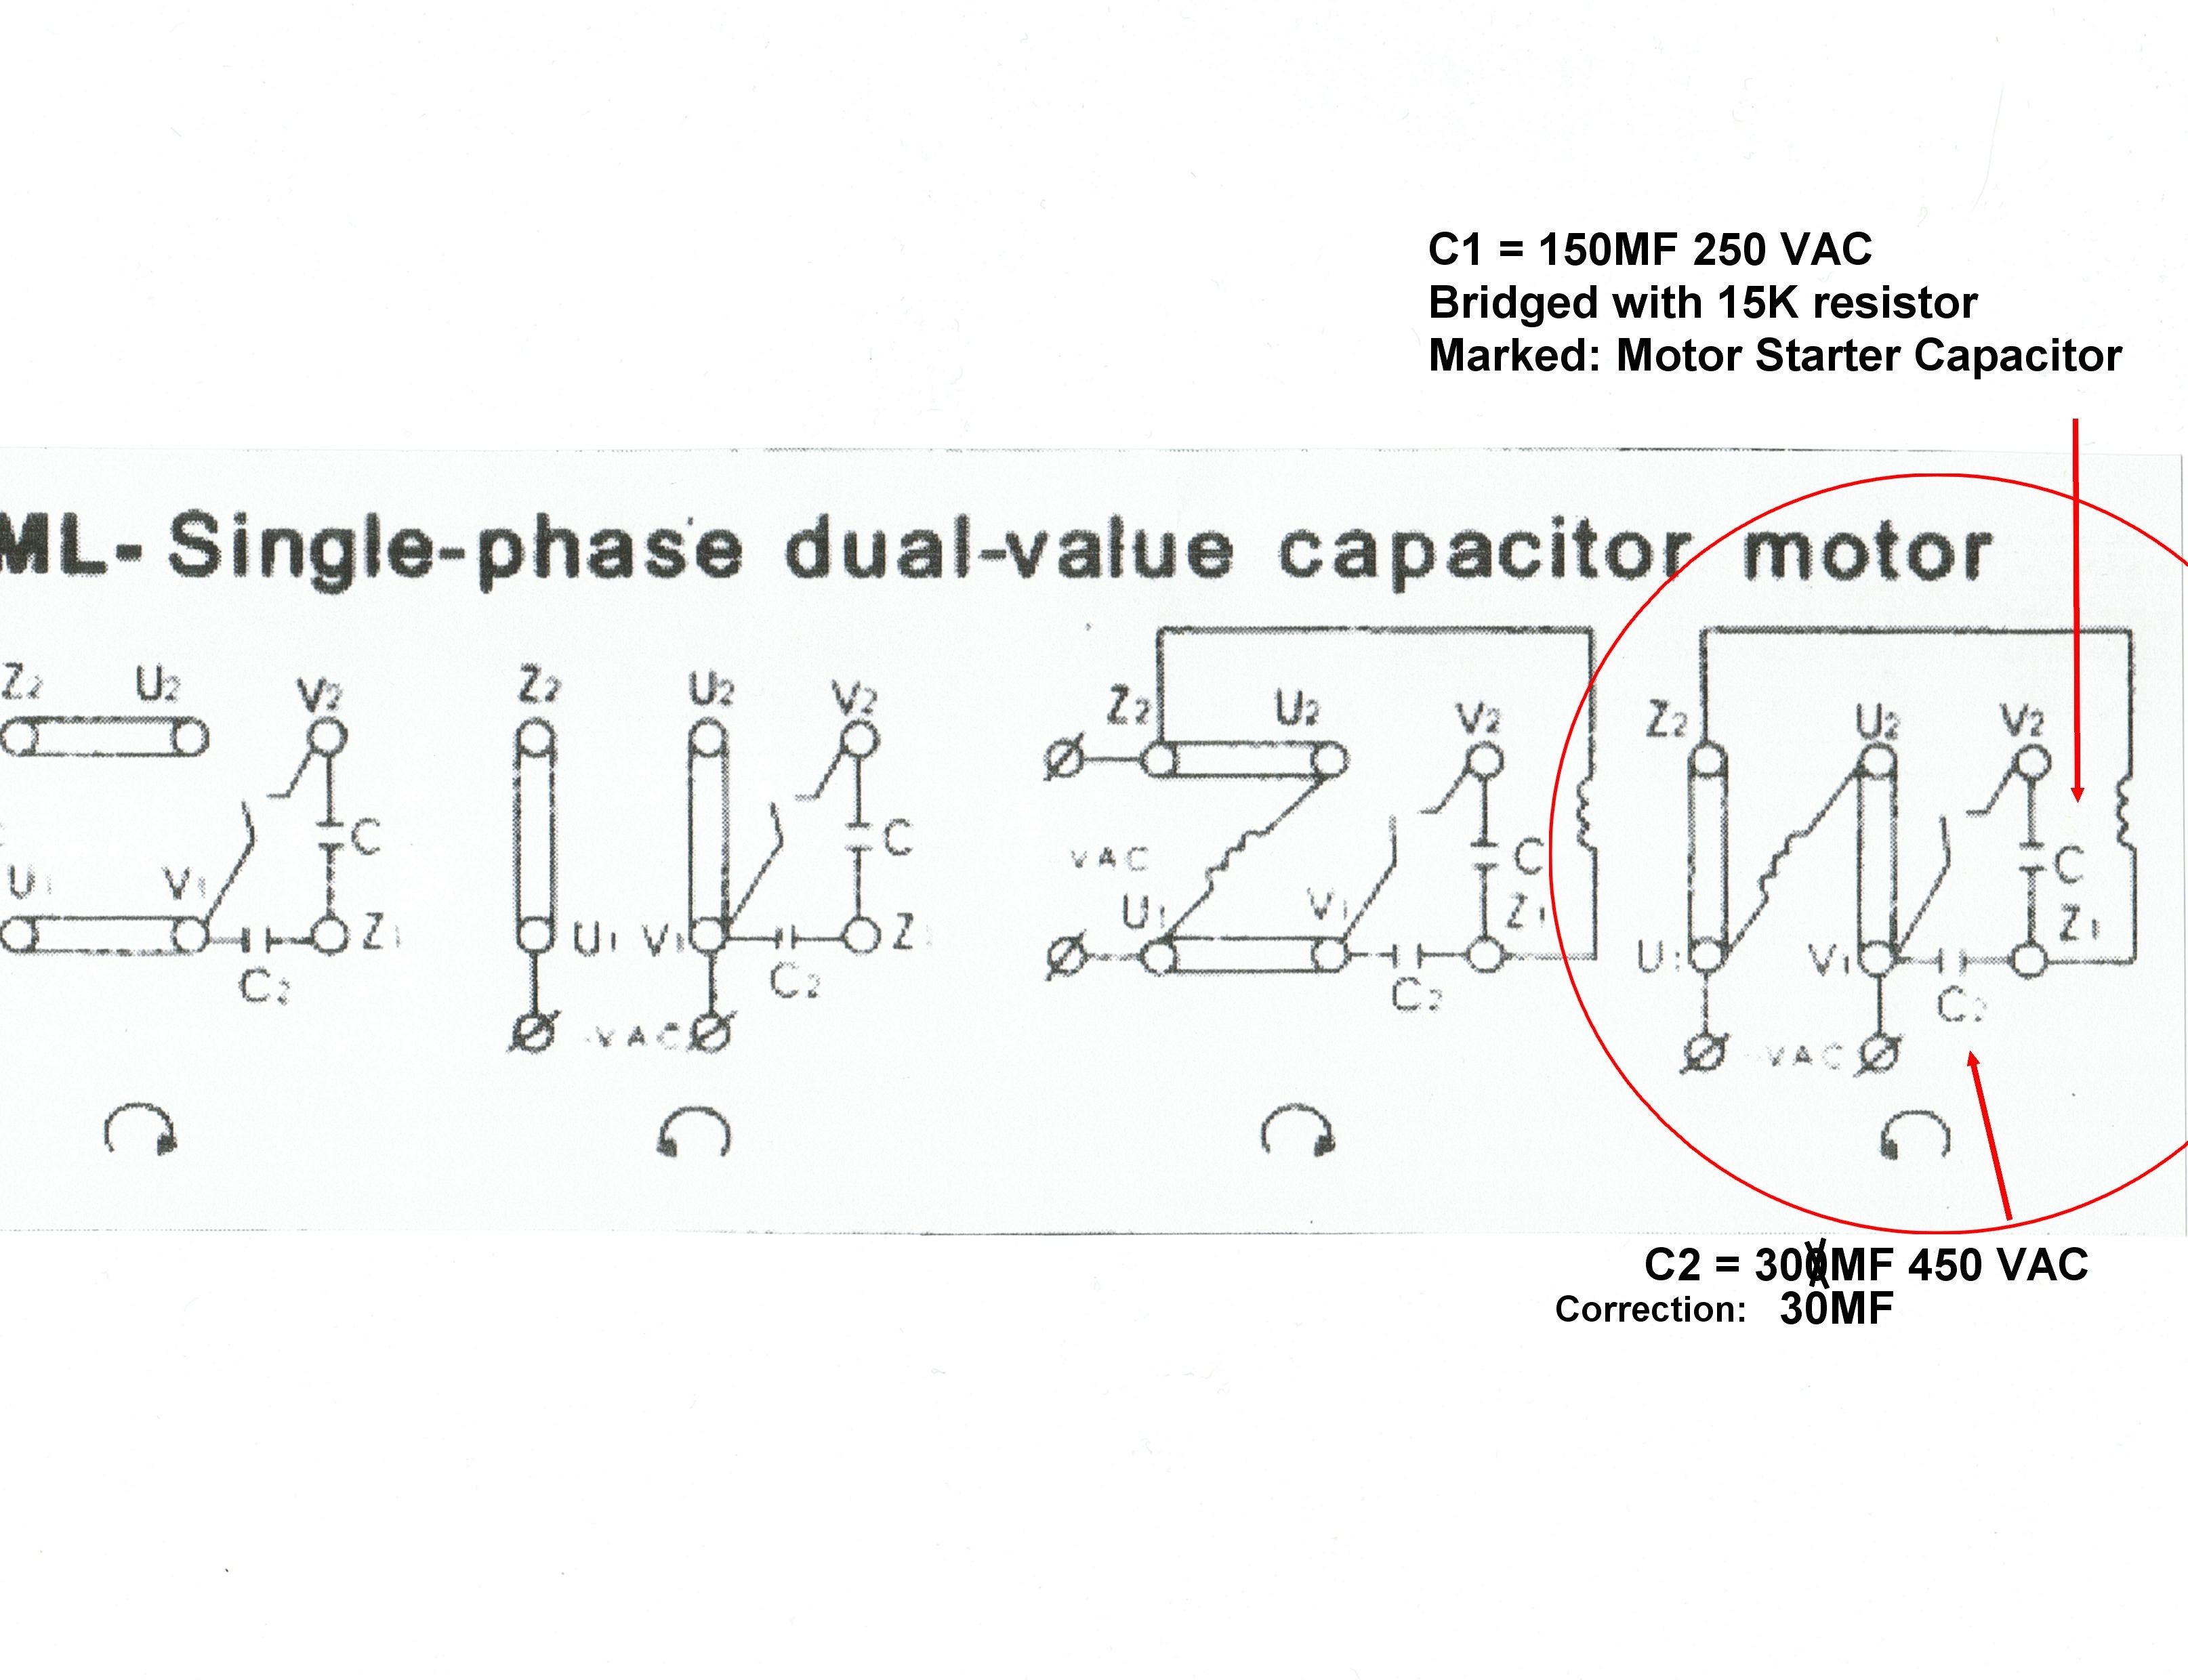 emerson electric motors wiring diagrams 3 phases cg 4226  toggle switch wiring diagram 120v motor free diagram  toggle switch wiring diagram 120v motor